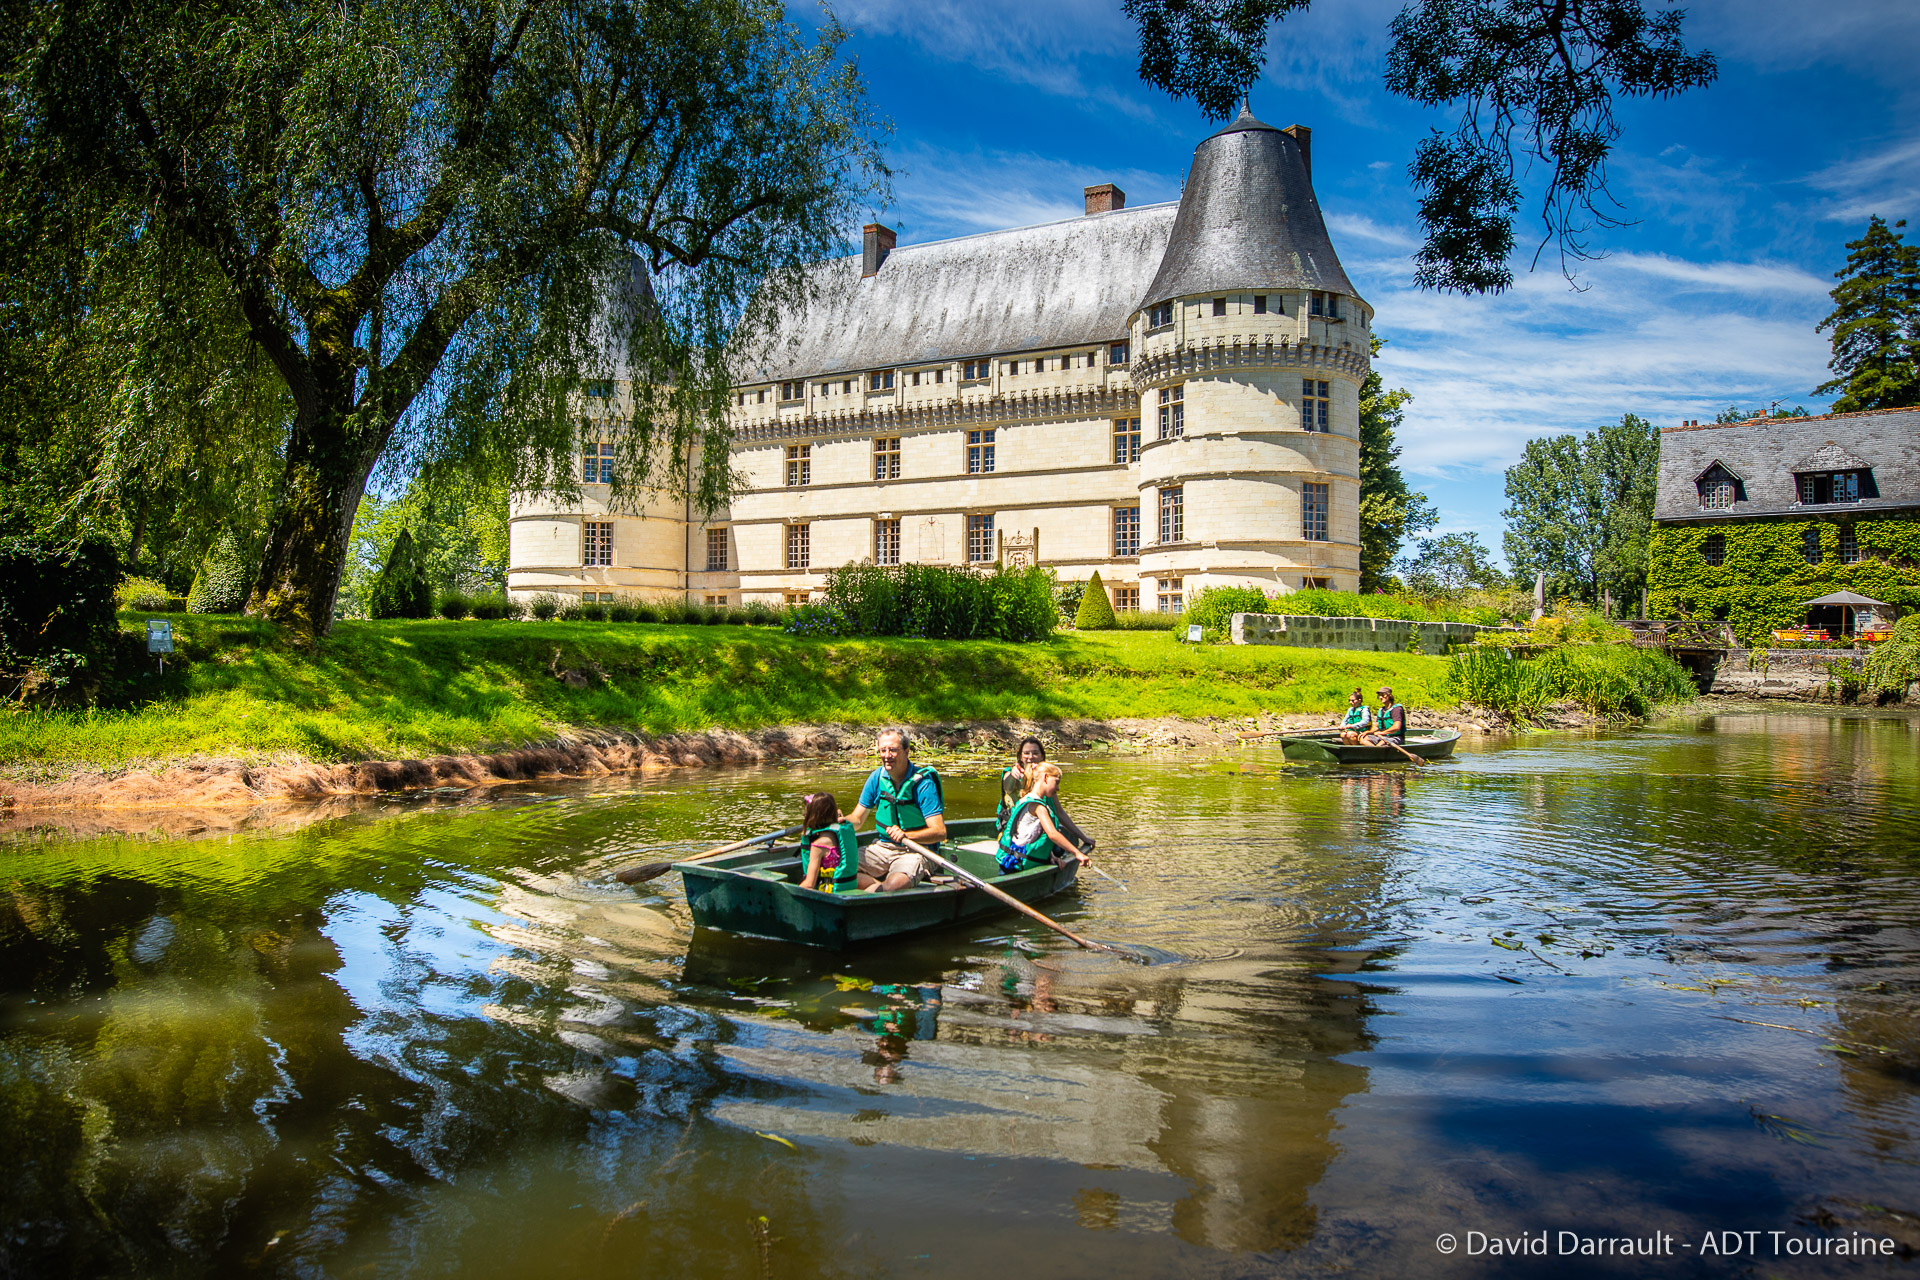 The beautiful french castle of L'Islette (in the town of Azay-le-Rideau), in the great collection of Loire Valley chateaux and near the motionless cruise on the Loire River.